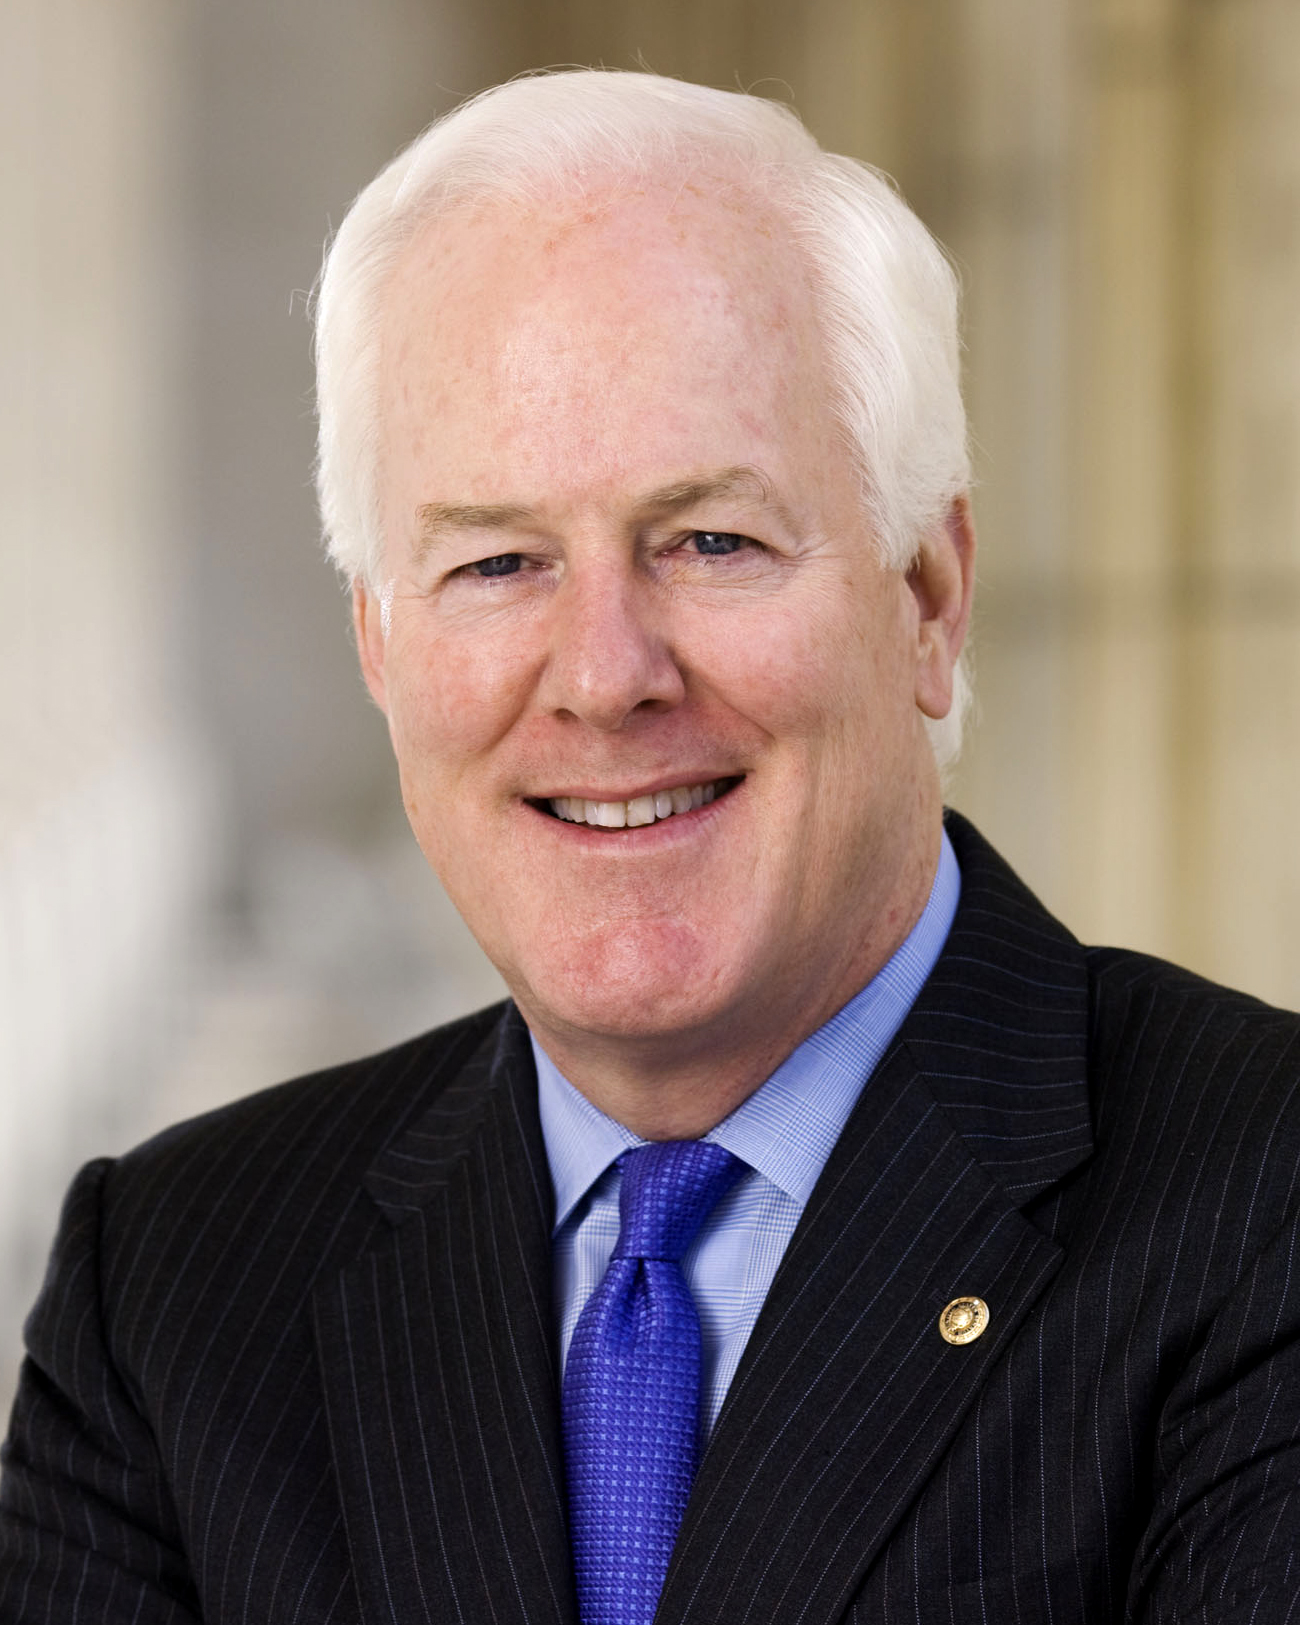 Http Commons Wikimedia Org Wiki File John Cornyn Official Portrait 2009 Crop Jpg